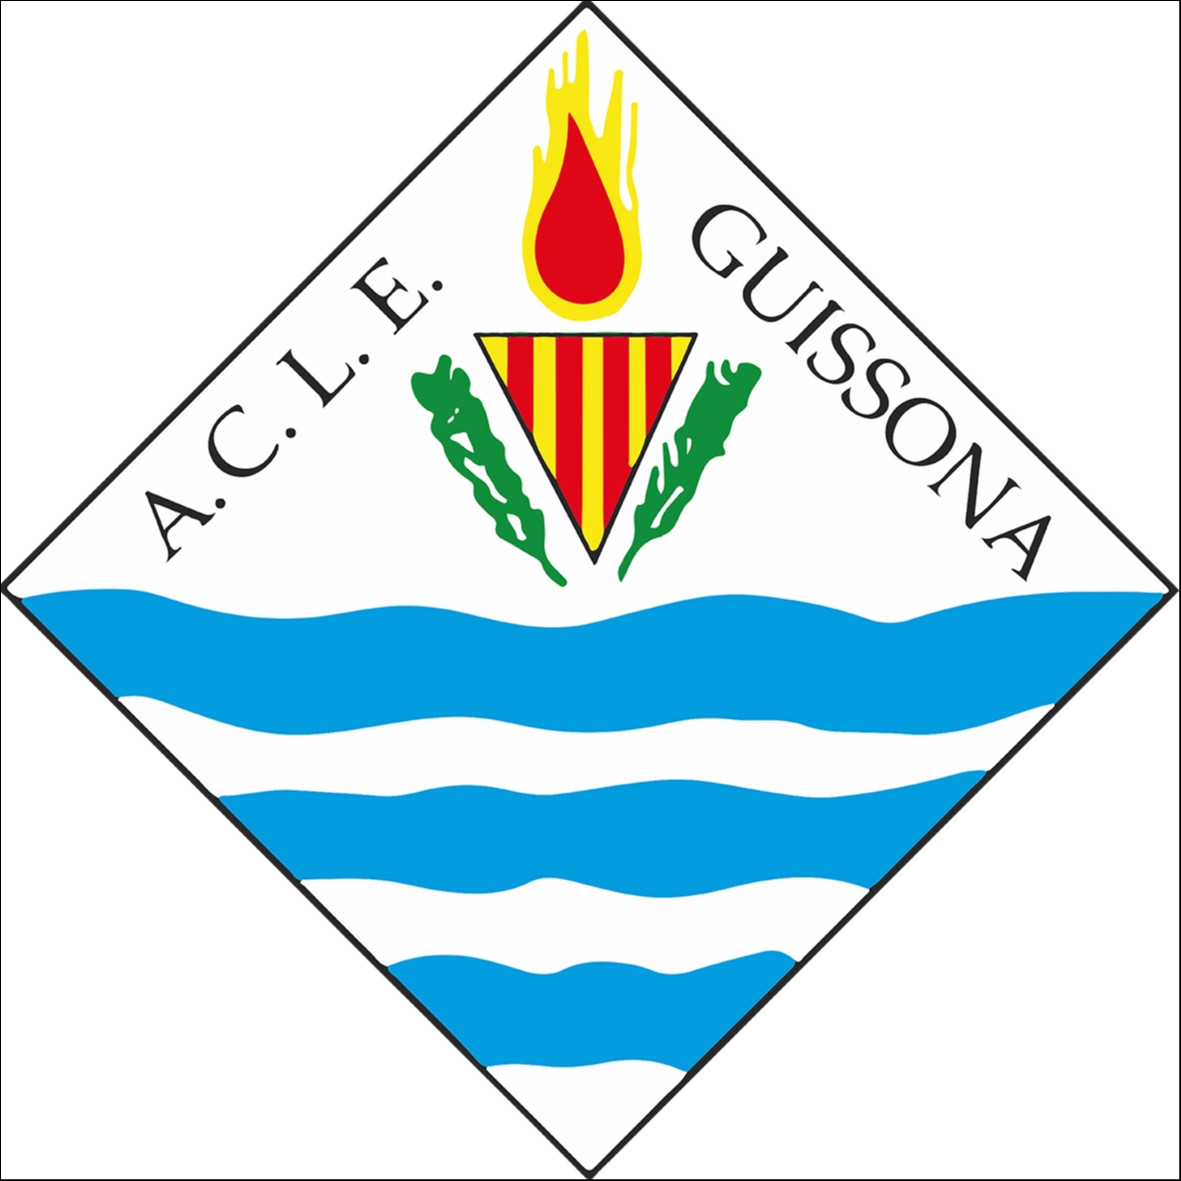 ACLE GUISSONA